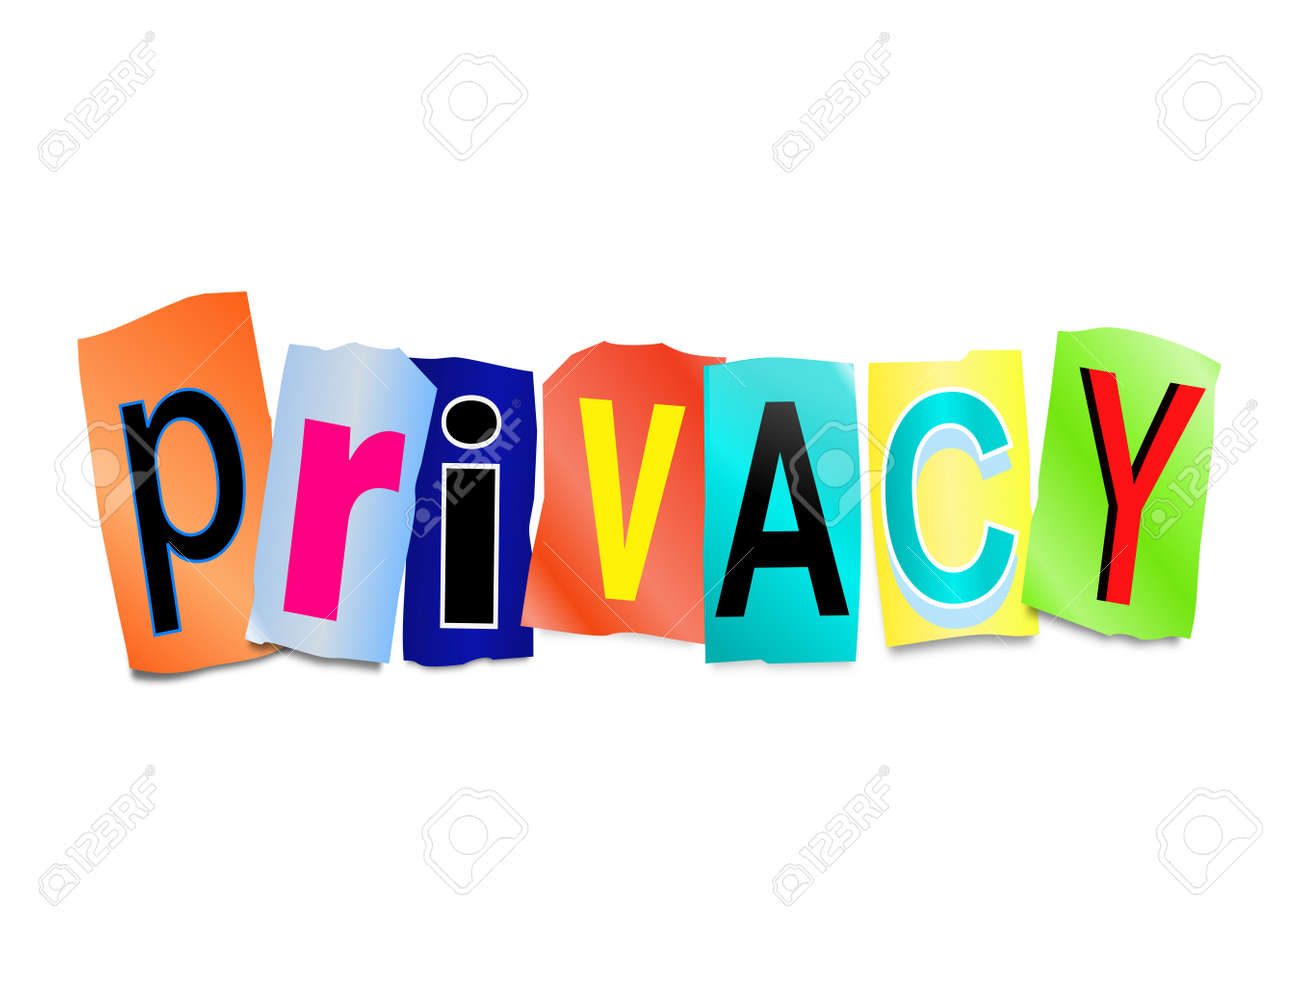 Illustration depicting a set of cut out printed letters arranged to form the word privacy. Stock Illustration - 25325099